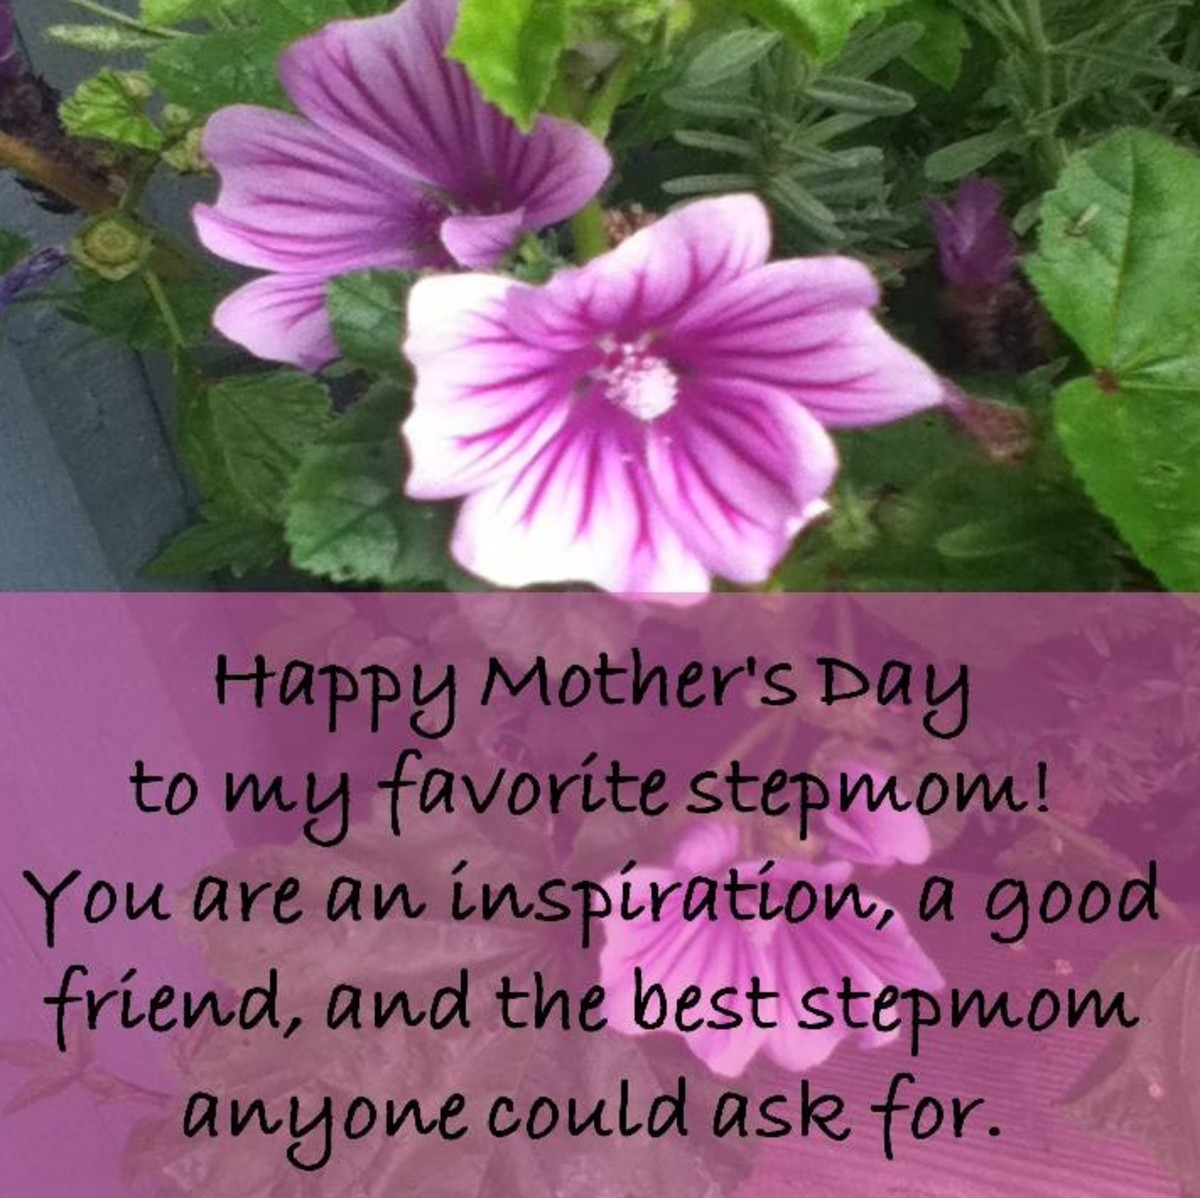 Card Greetings And Gift Ideas For A Stepmom On Mothers Day Holidappy